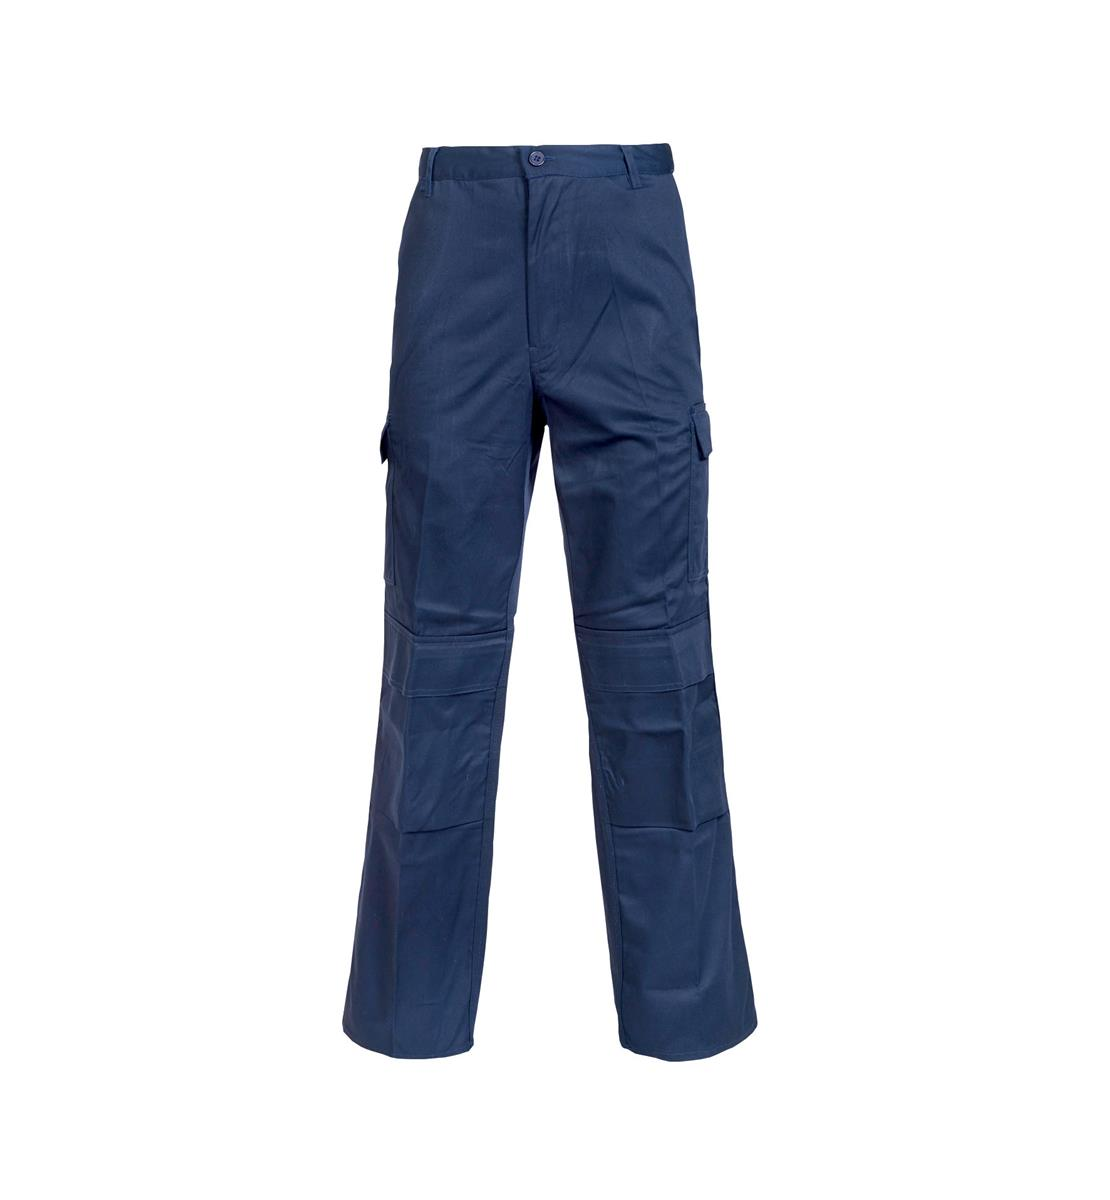 Combat Trousers Polycotton with Pockets 40in Long Navy Blue Ref PCTHWN40T *1-3 Days Lead Time*